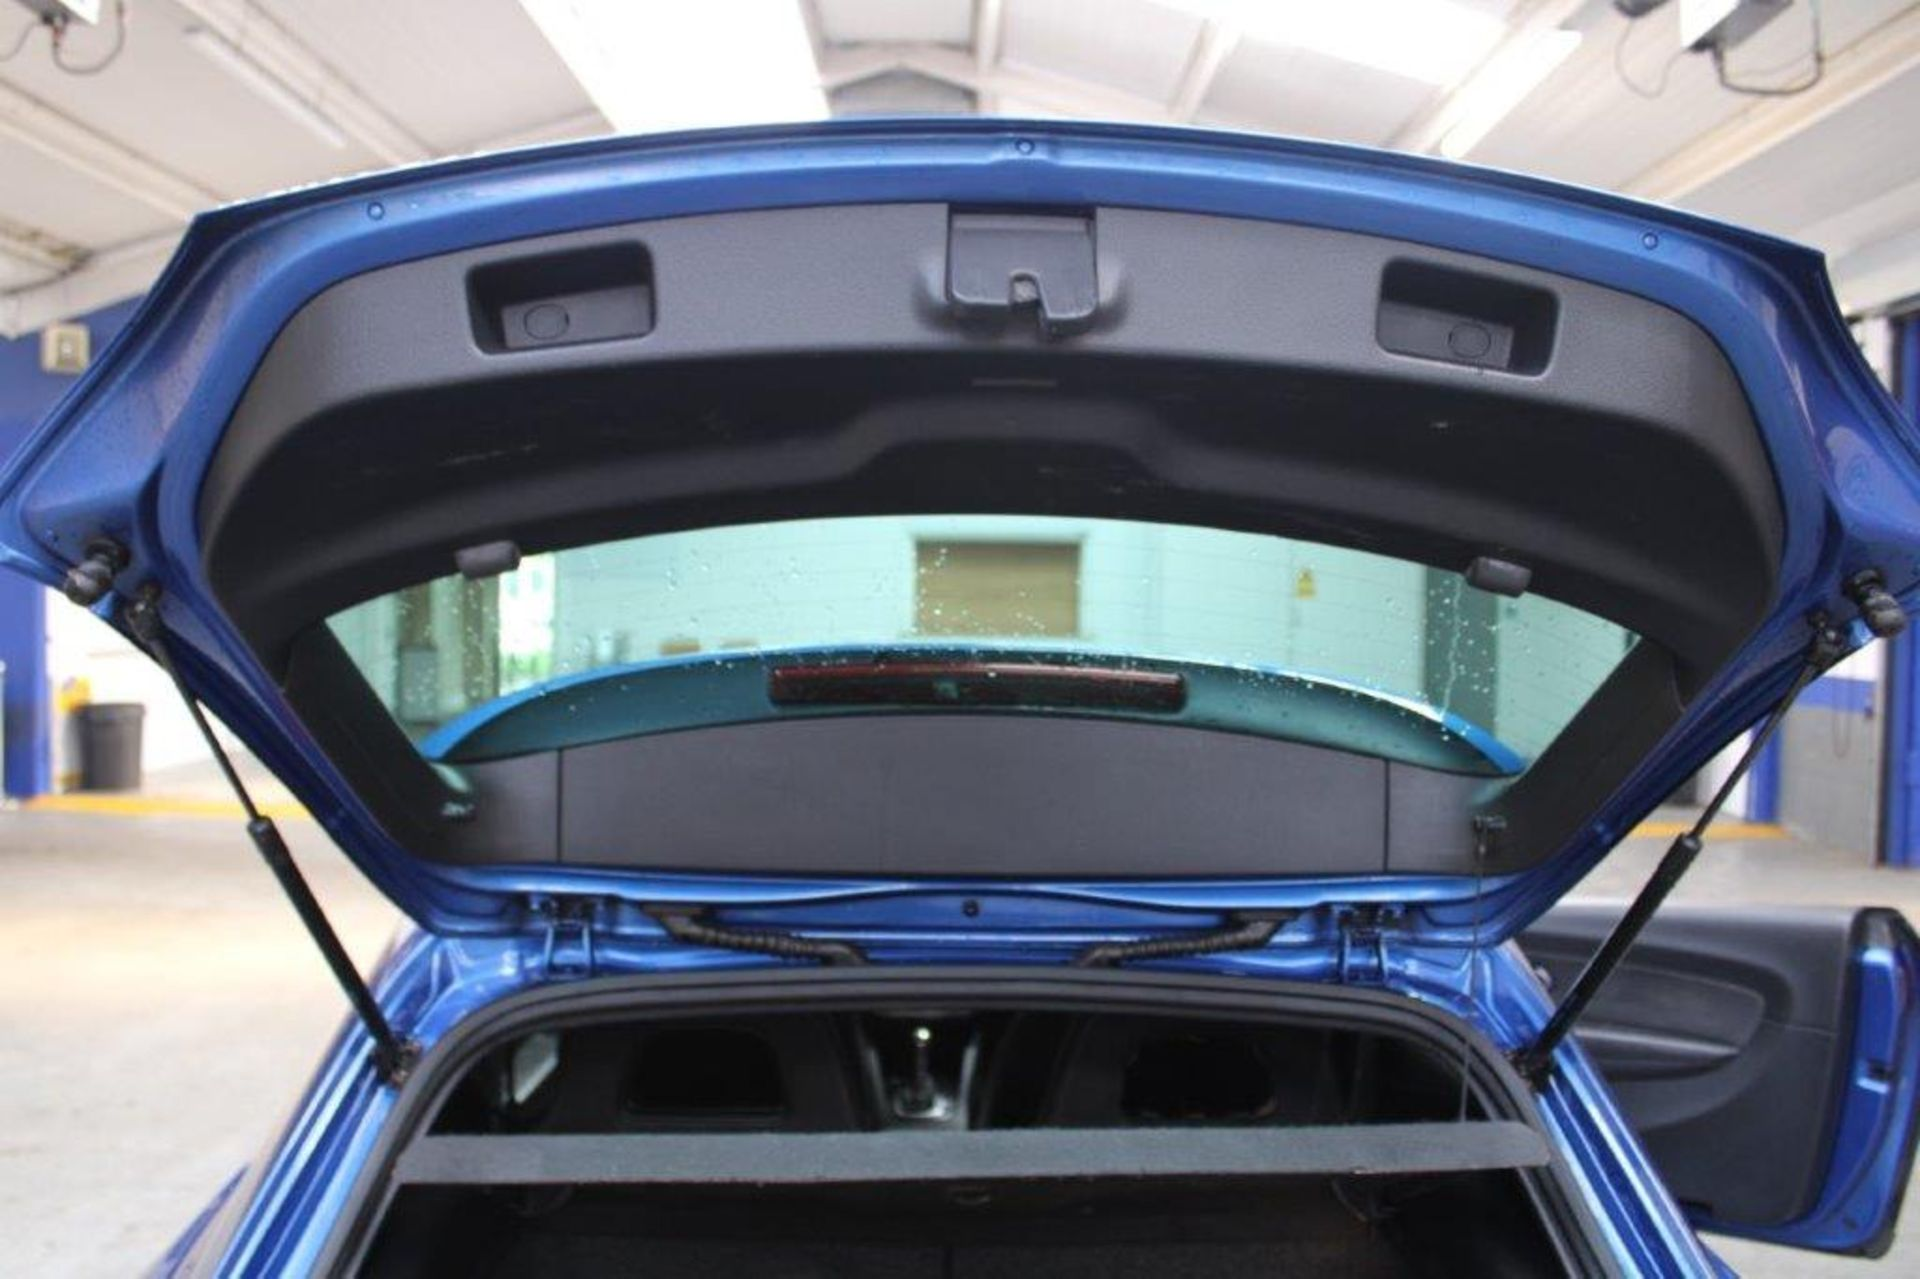 58 08 VW Scirocco GT - Image 25 of 29